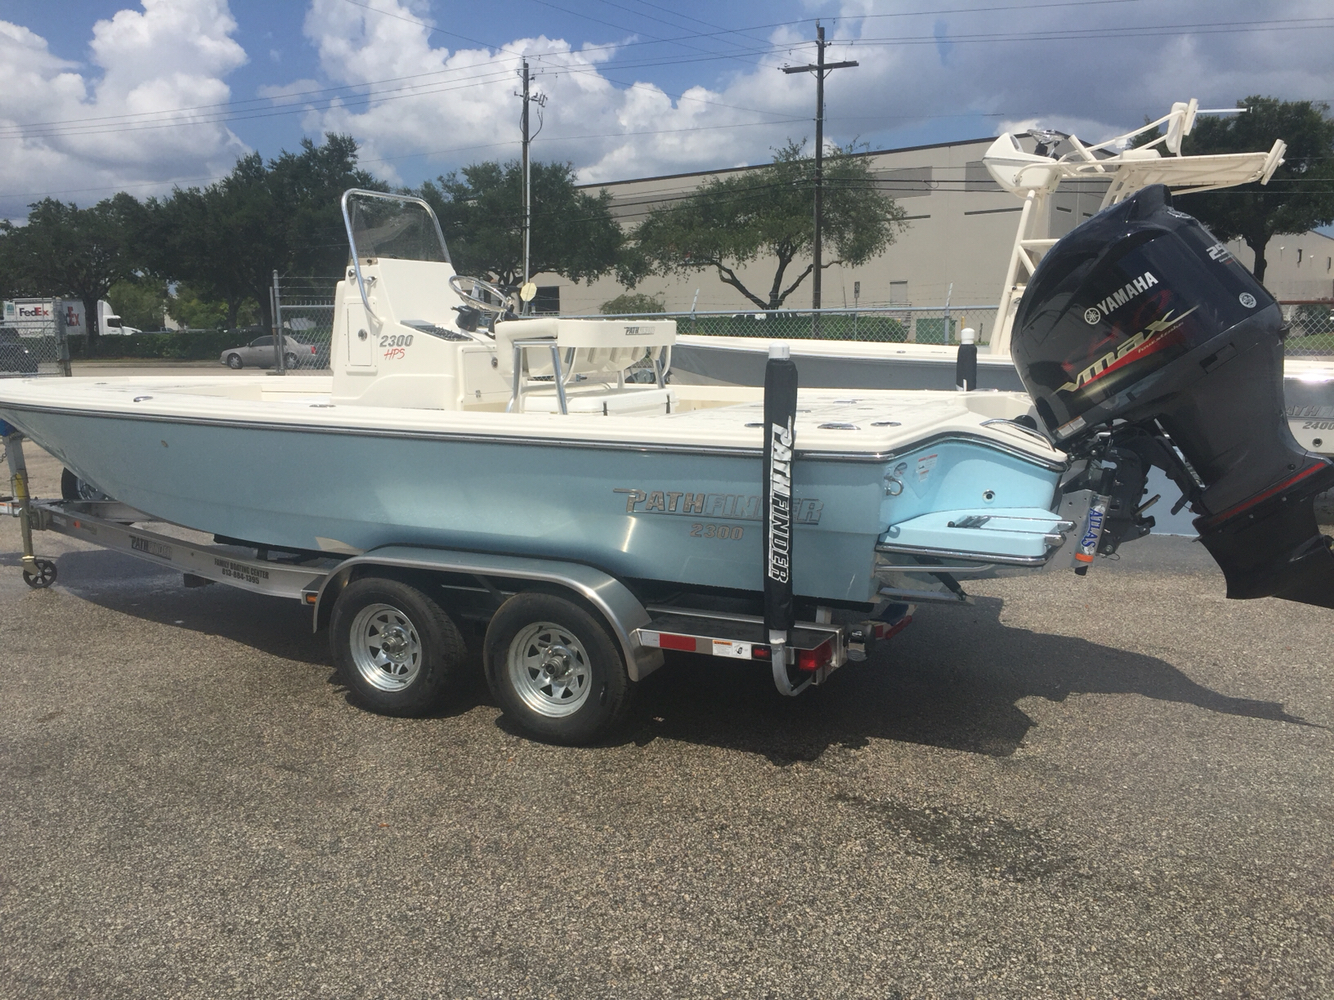 2017 Pathfinder 2300hps 23 Foot 2017 Pathfinder Boat In